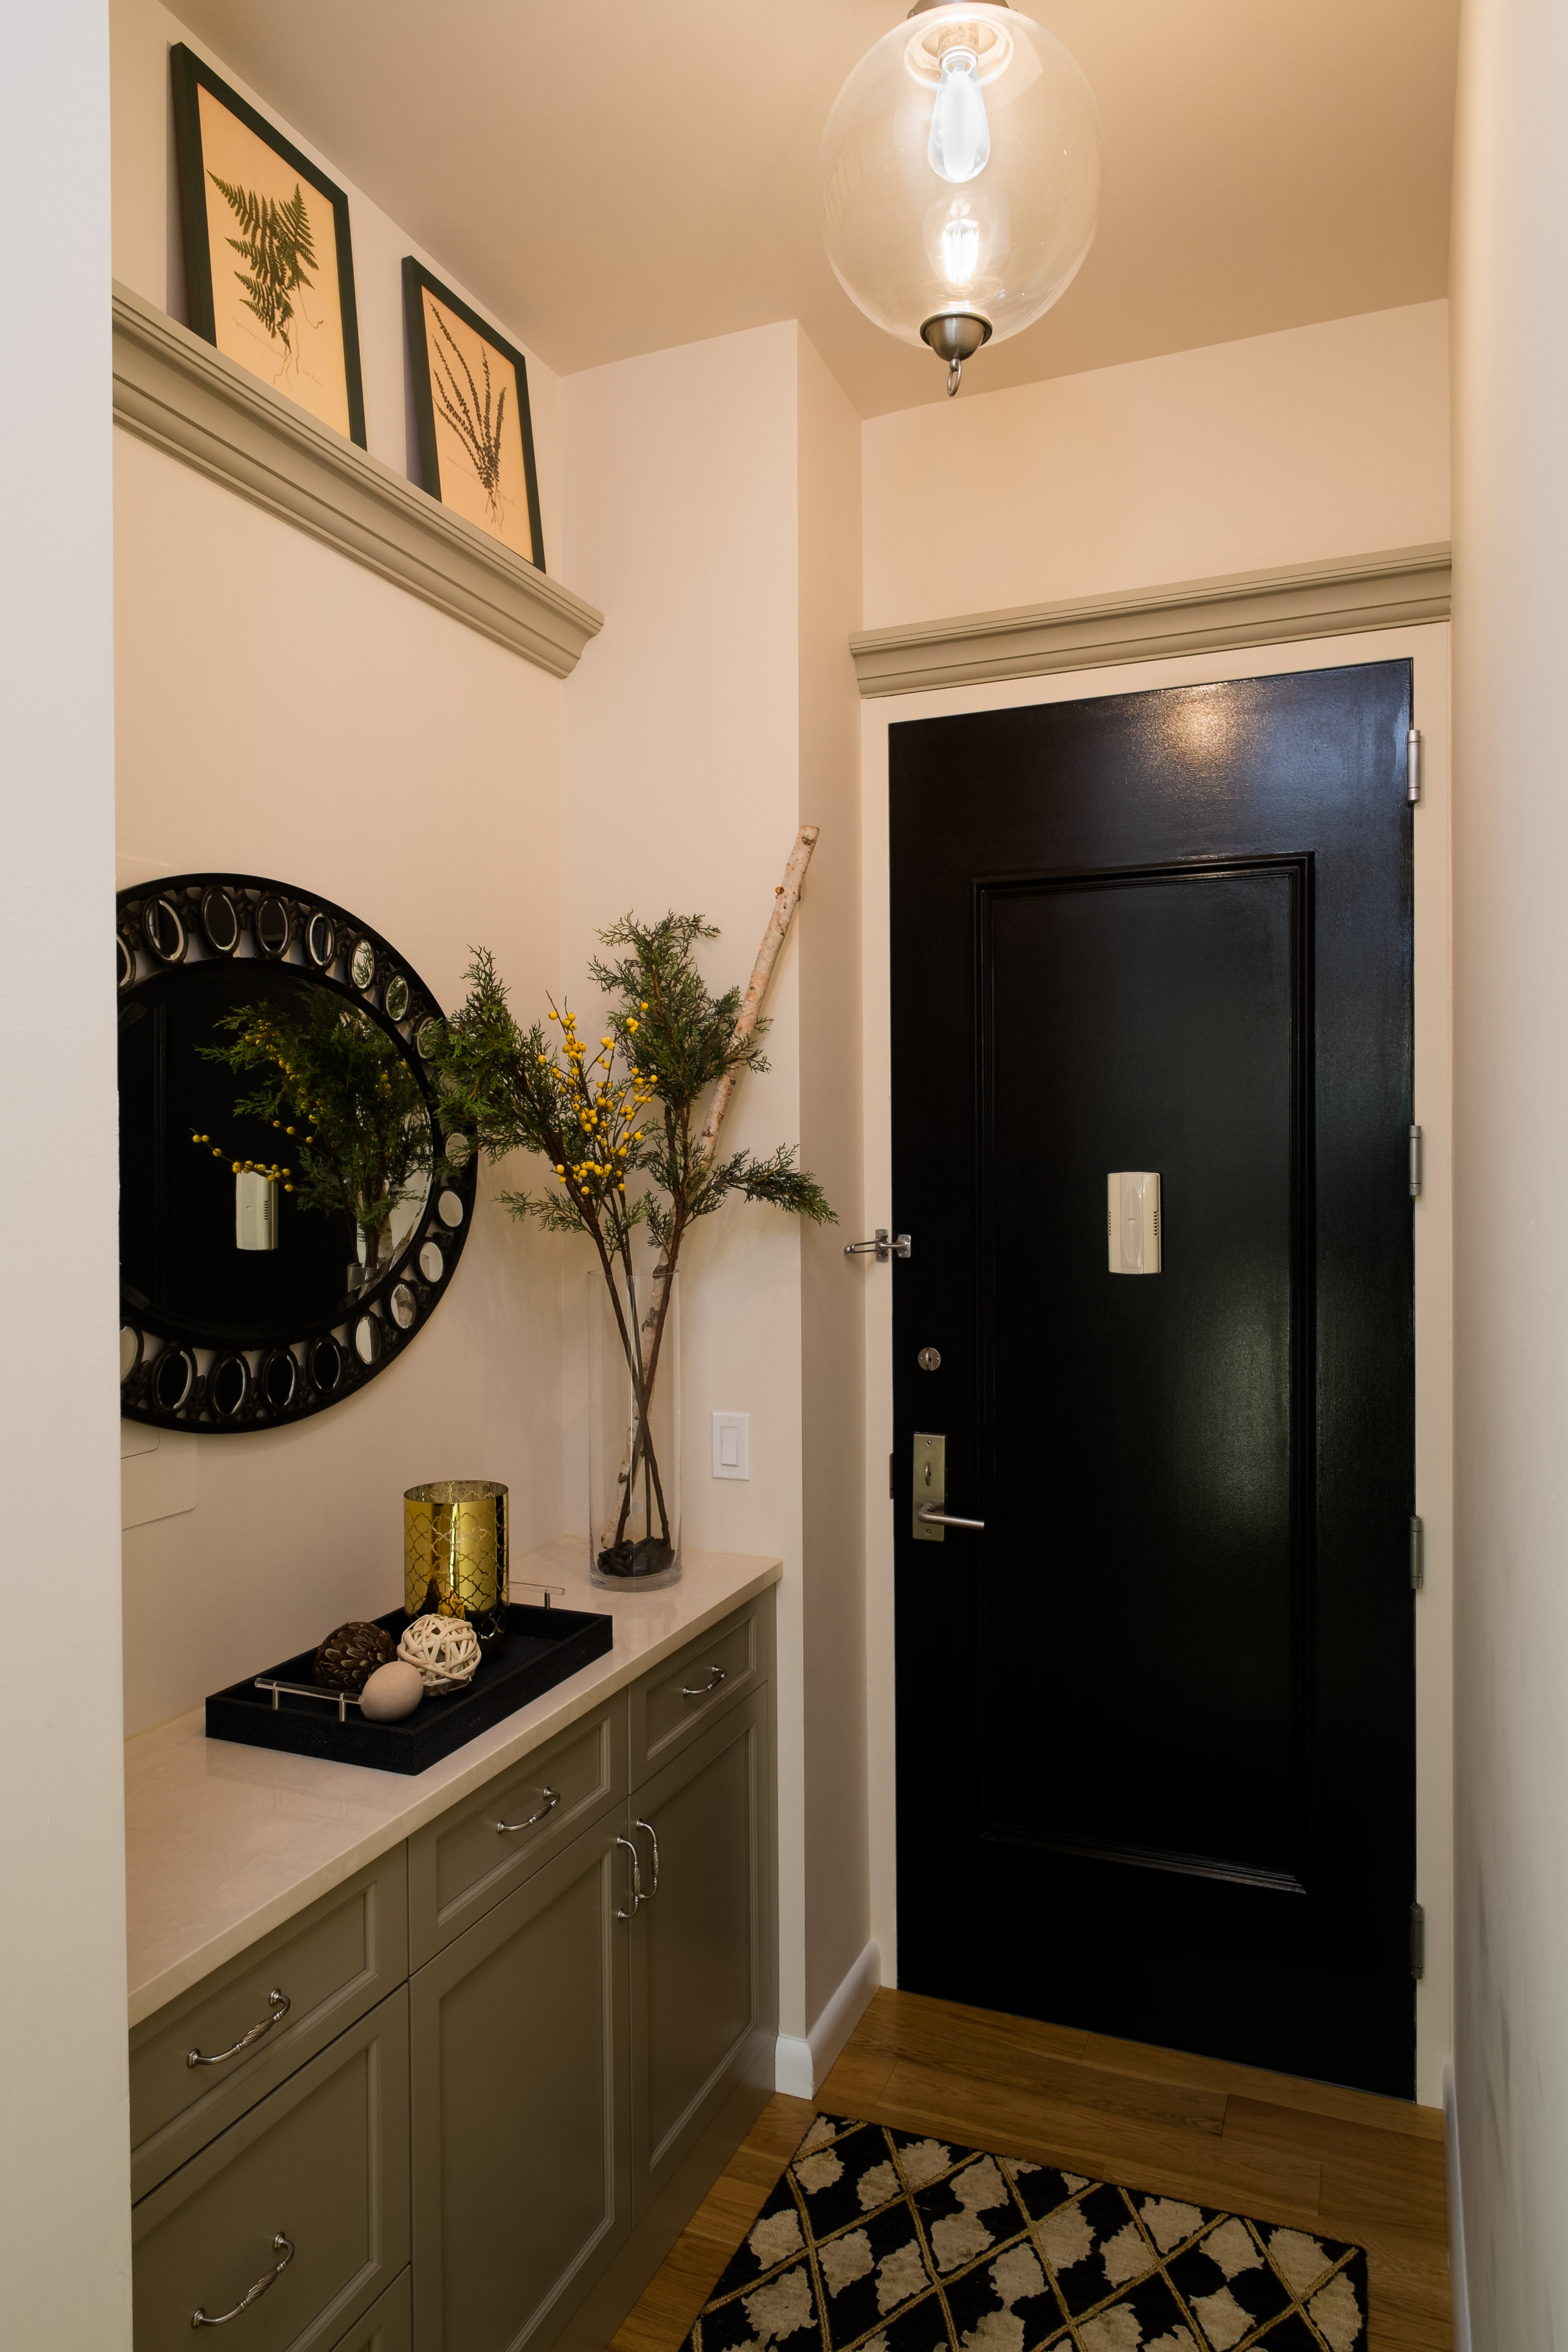 Dickerman Design design project entryway after image, clean, modern and utilizes the space beautifully